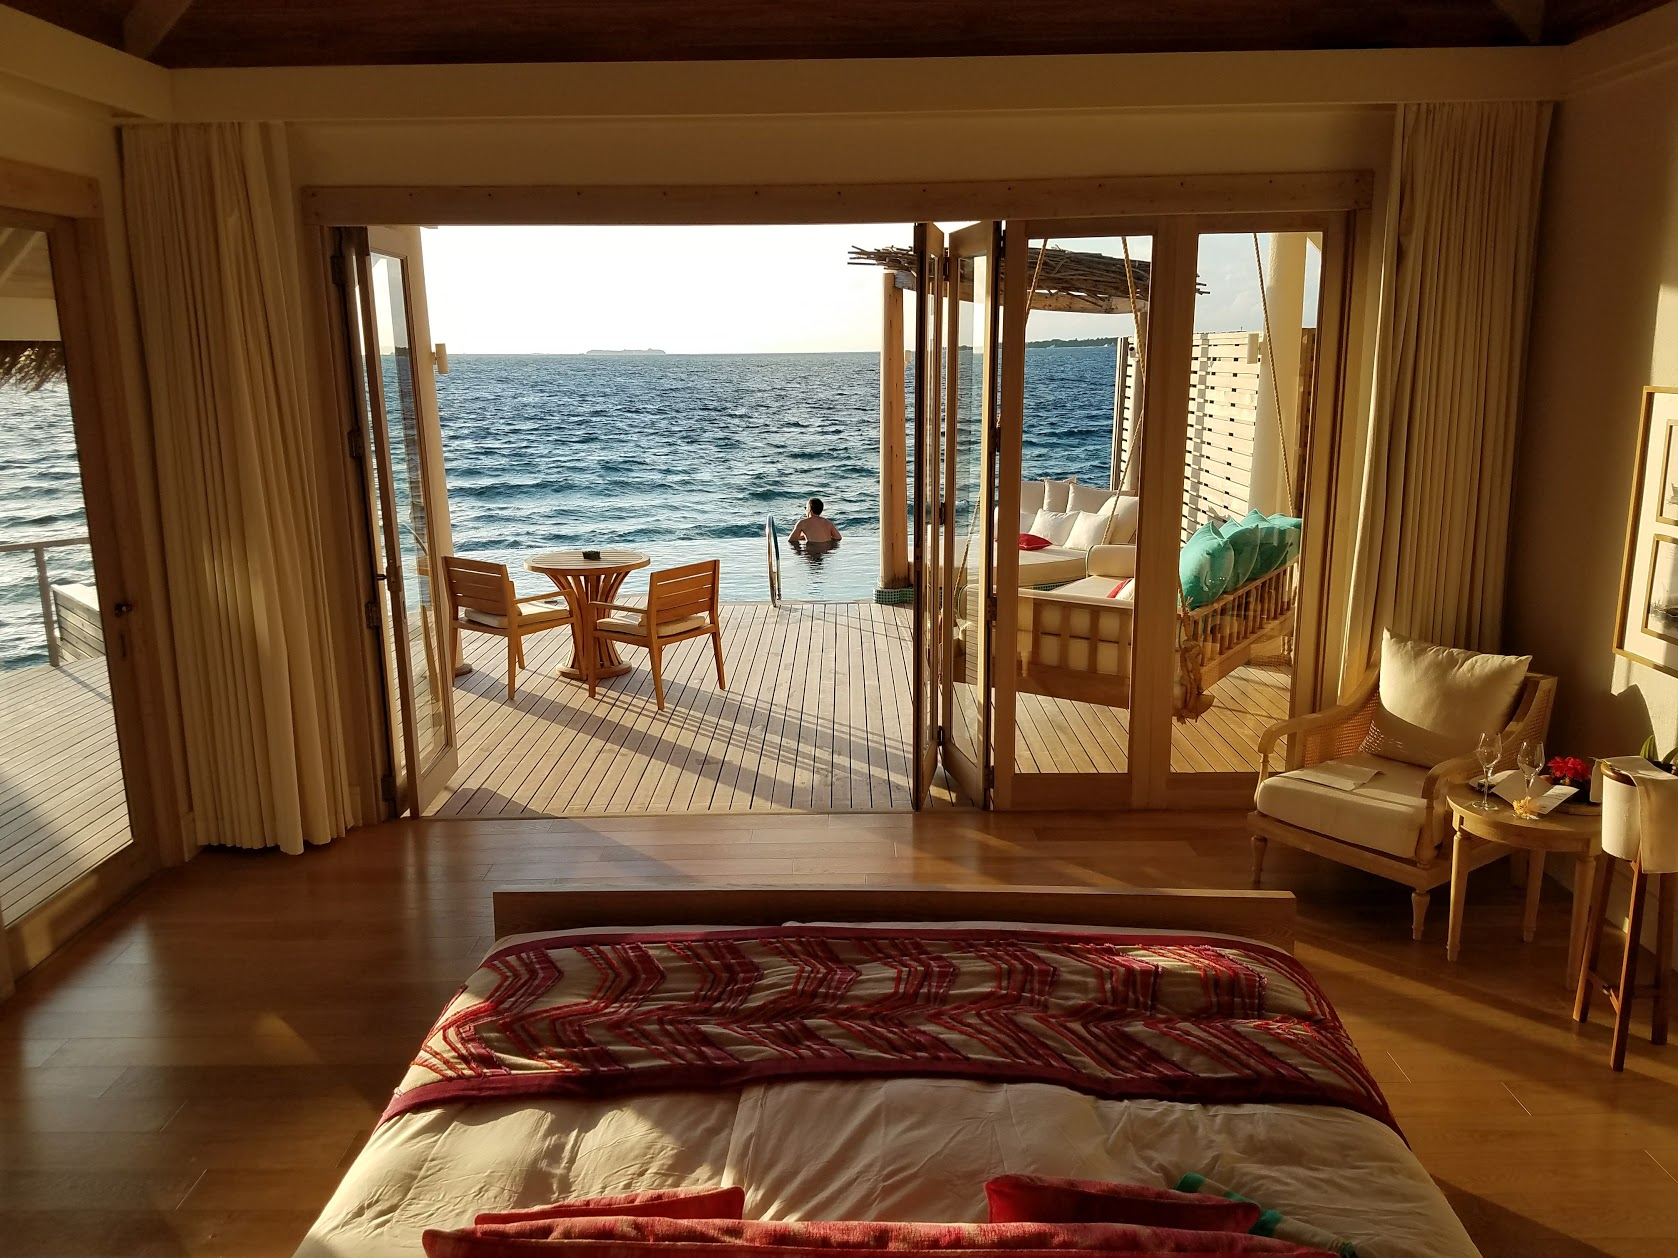 Our overwater villa with private pool at Milaidhoo.